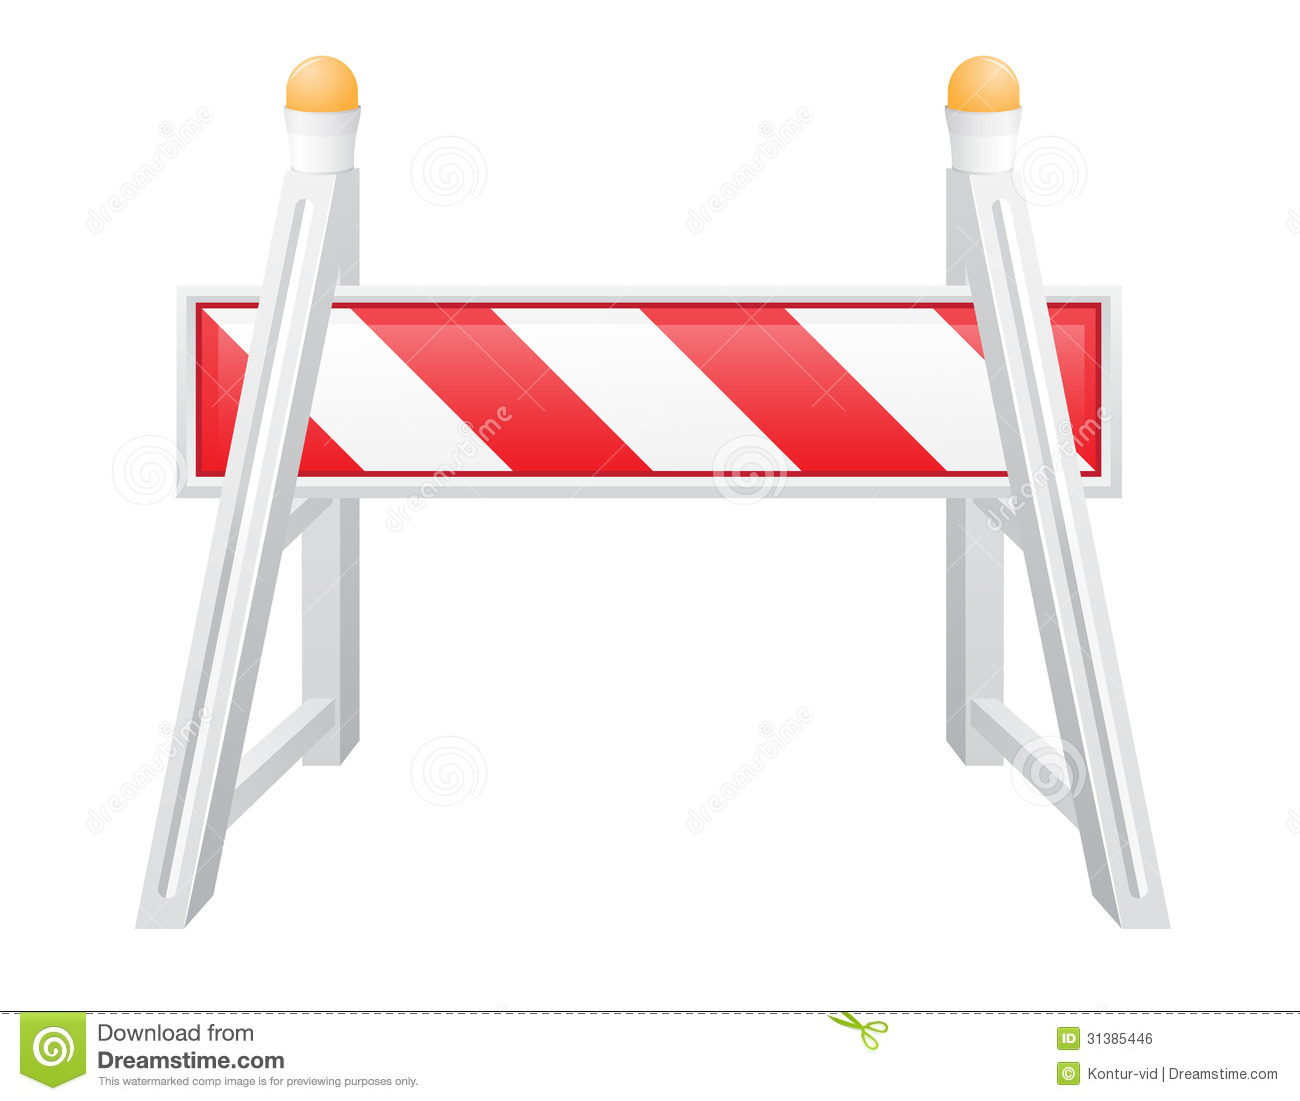 Road block clipart clipart free download Roadblock 20clipart | Clipart Panda - Free Clipart Images clipart free download